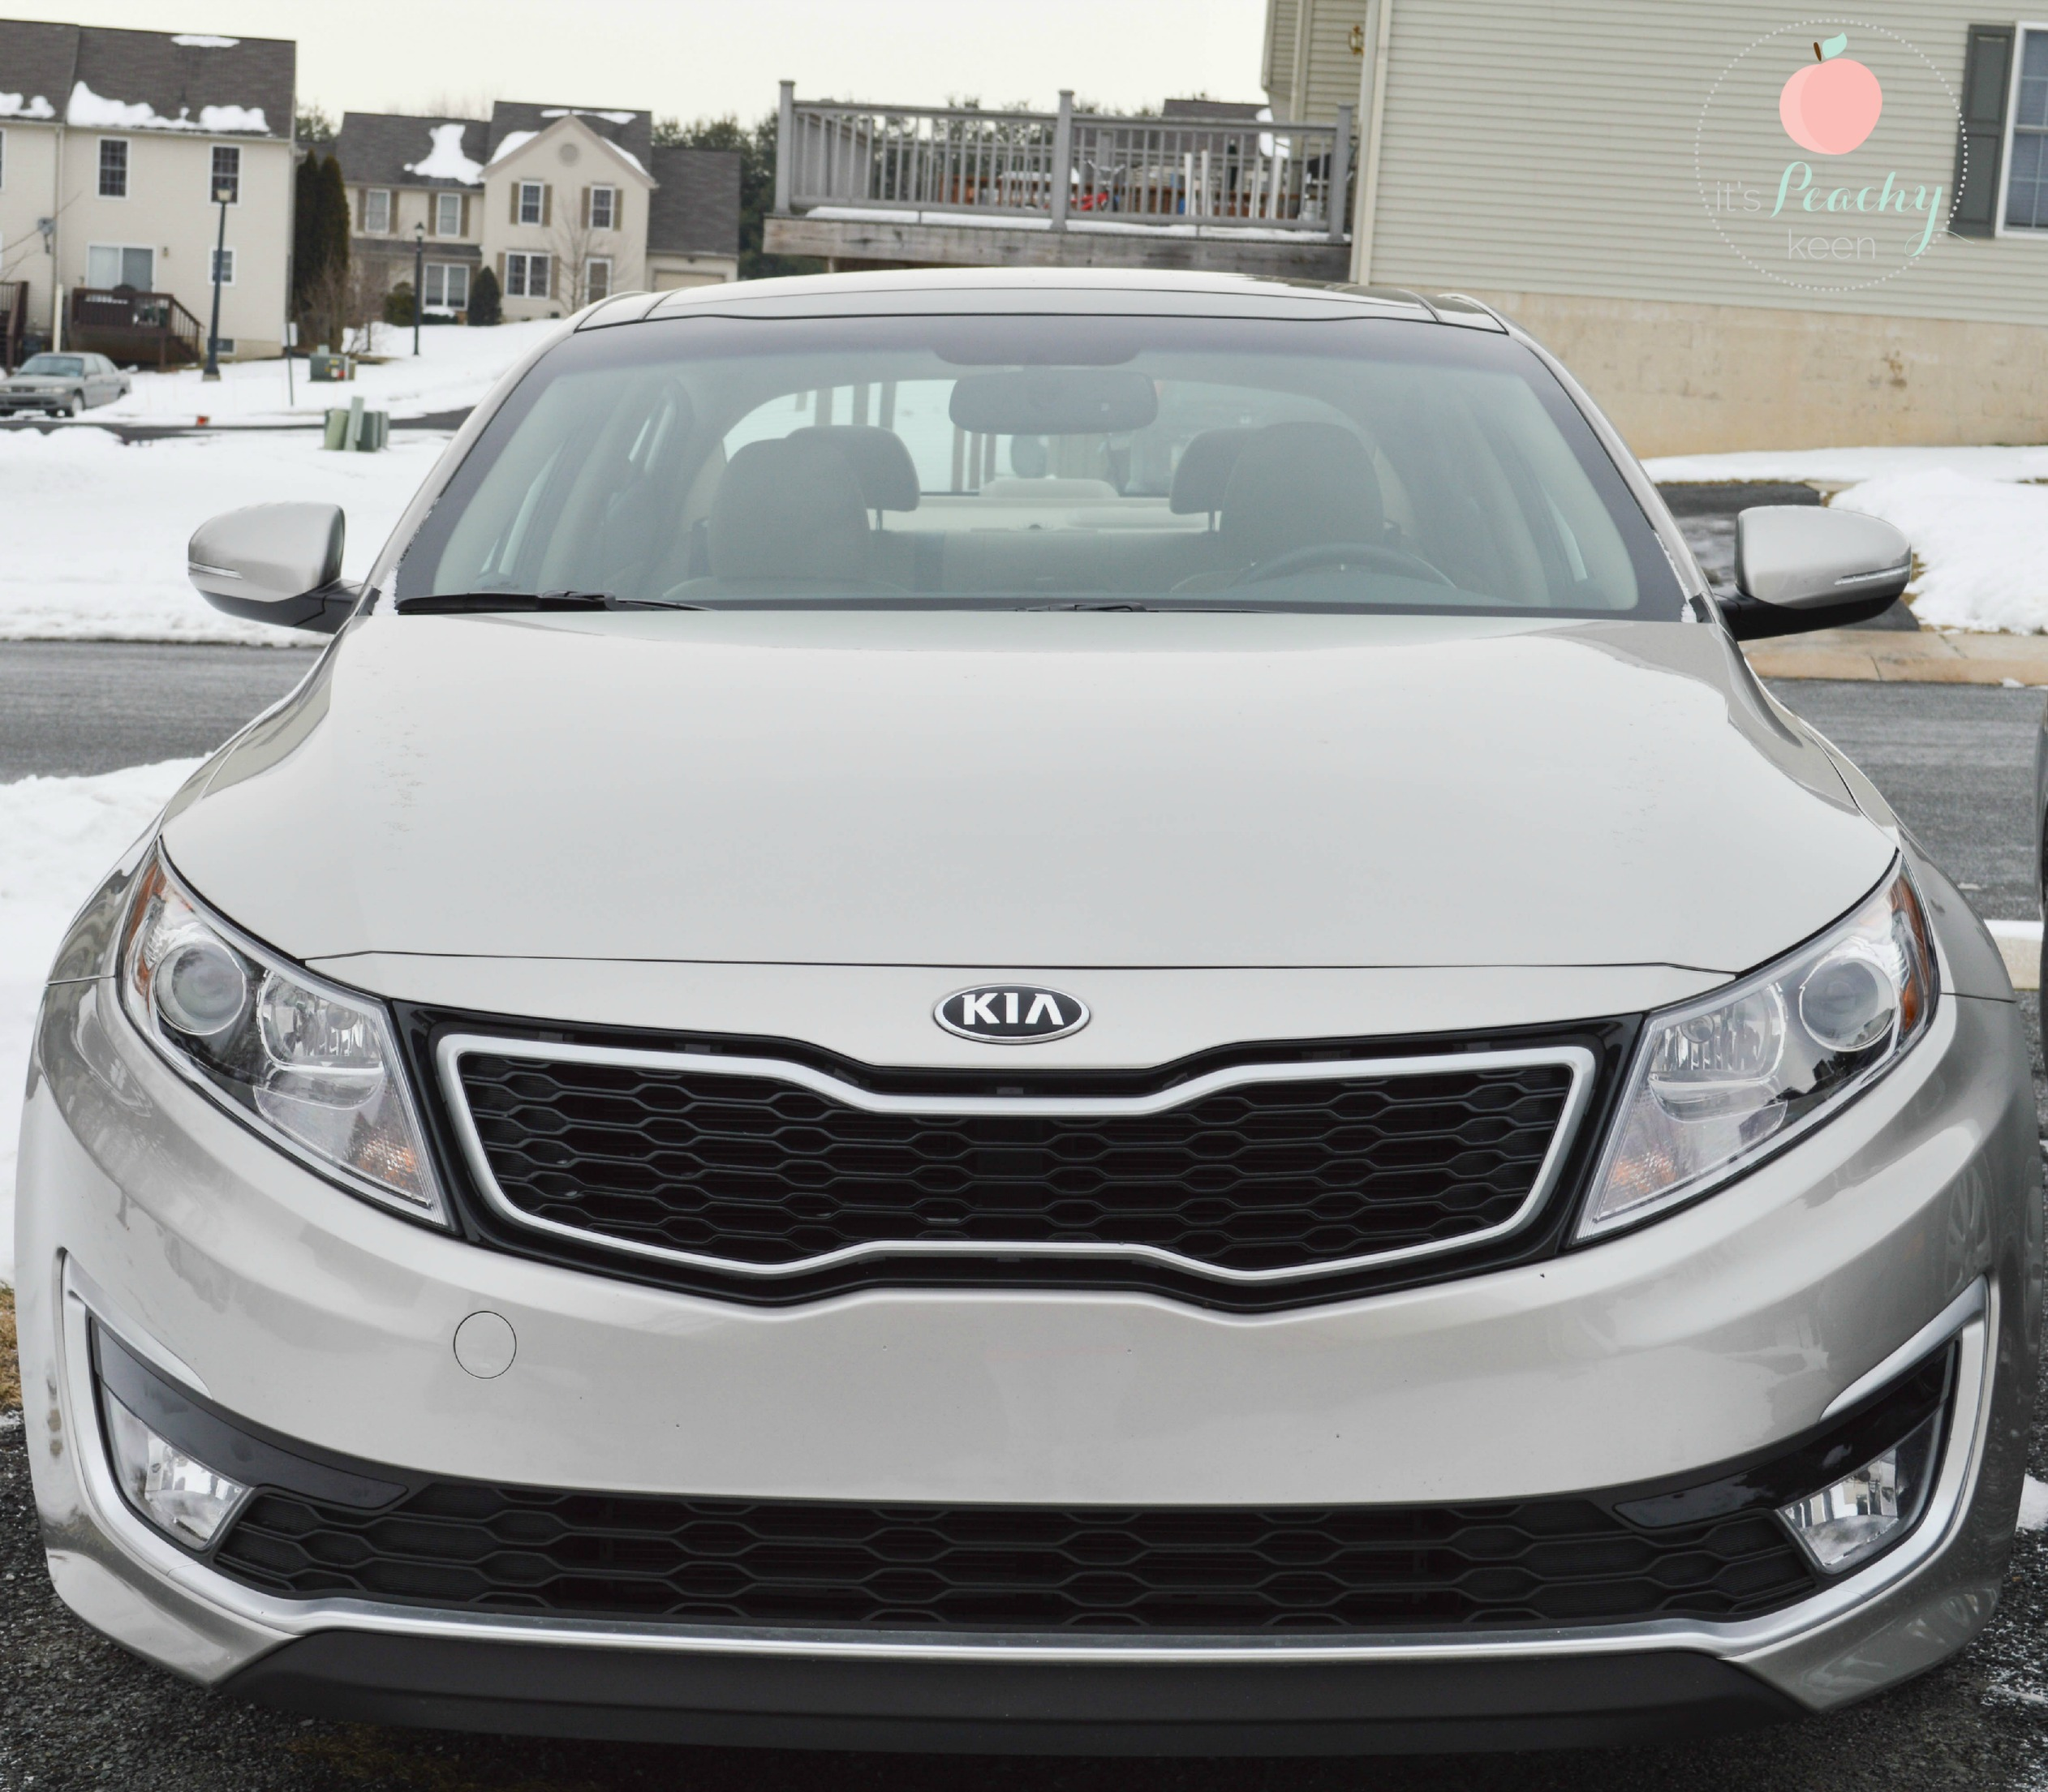 sxl s car hybrid u optima in us kia blog korean the launched